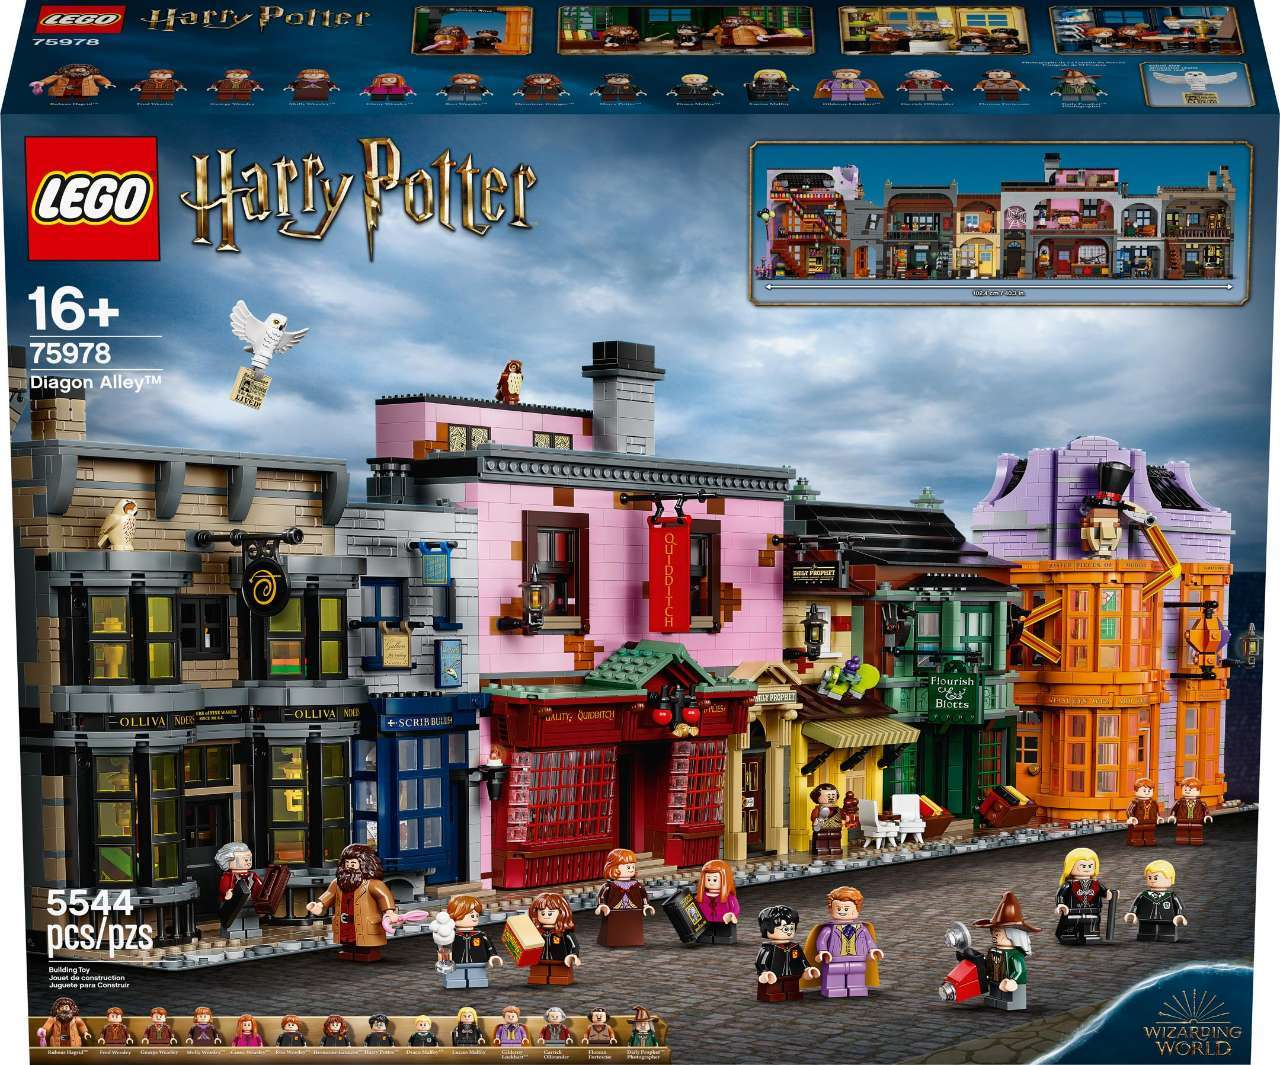 lego-harry-potter-CB-75978-Diagon-Alley-FH61K-1